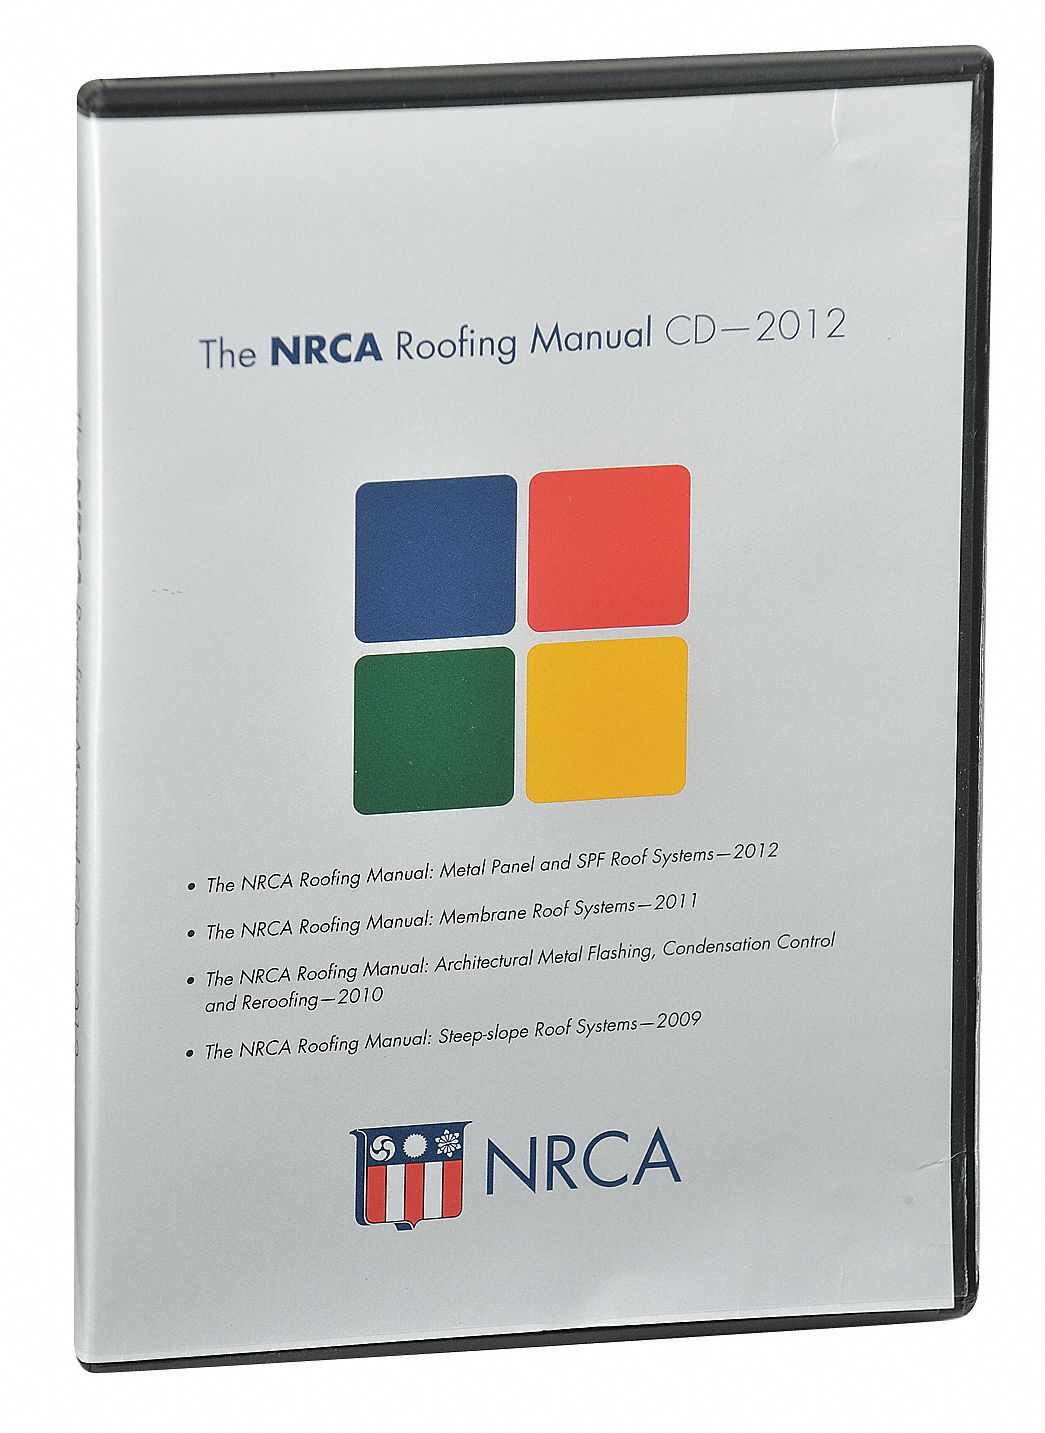 Reference Book,  Residential Construction,  The NRCA Roofing Manual,  CD- Digital Document